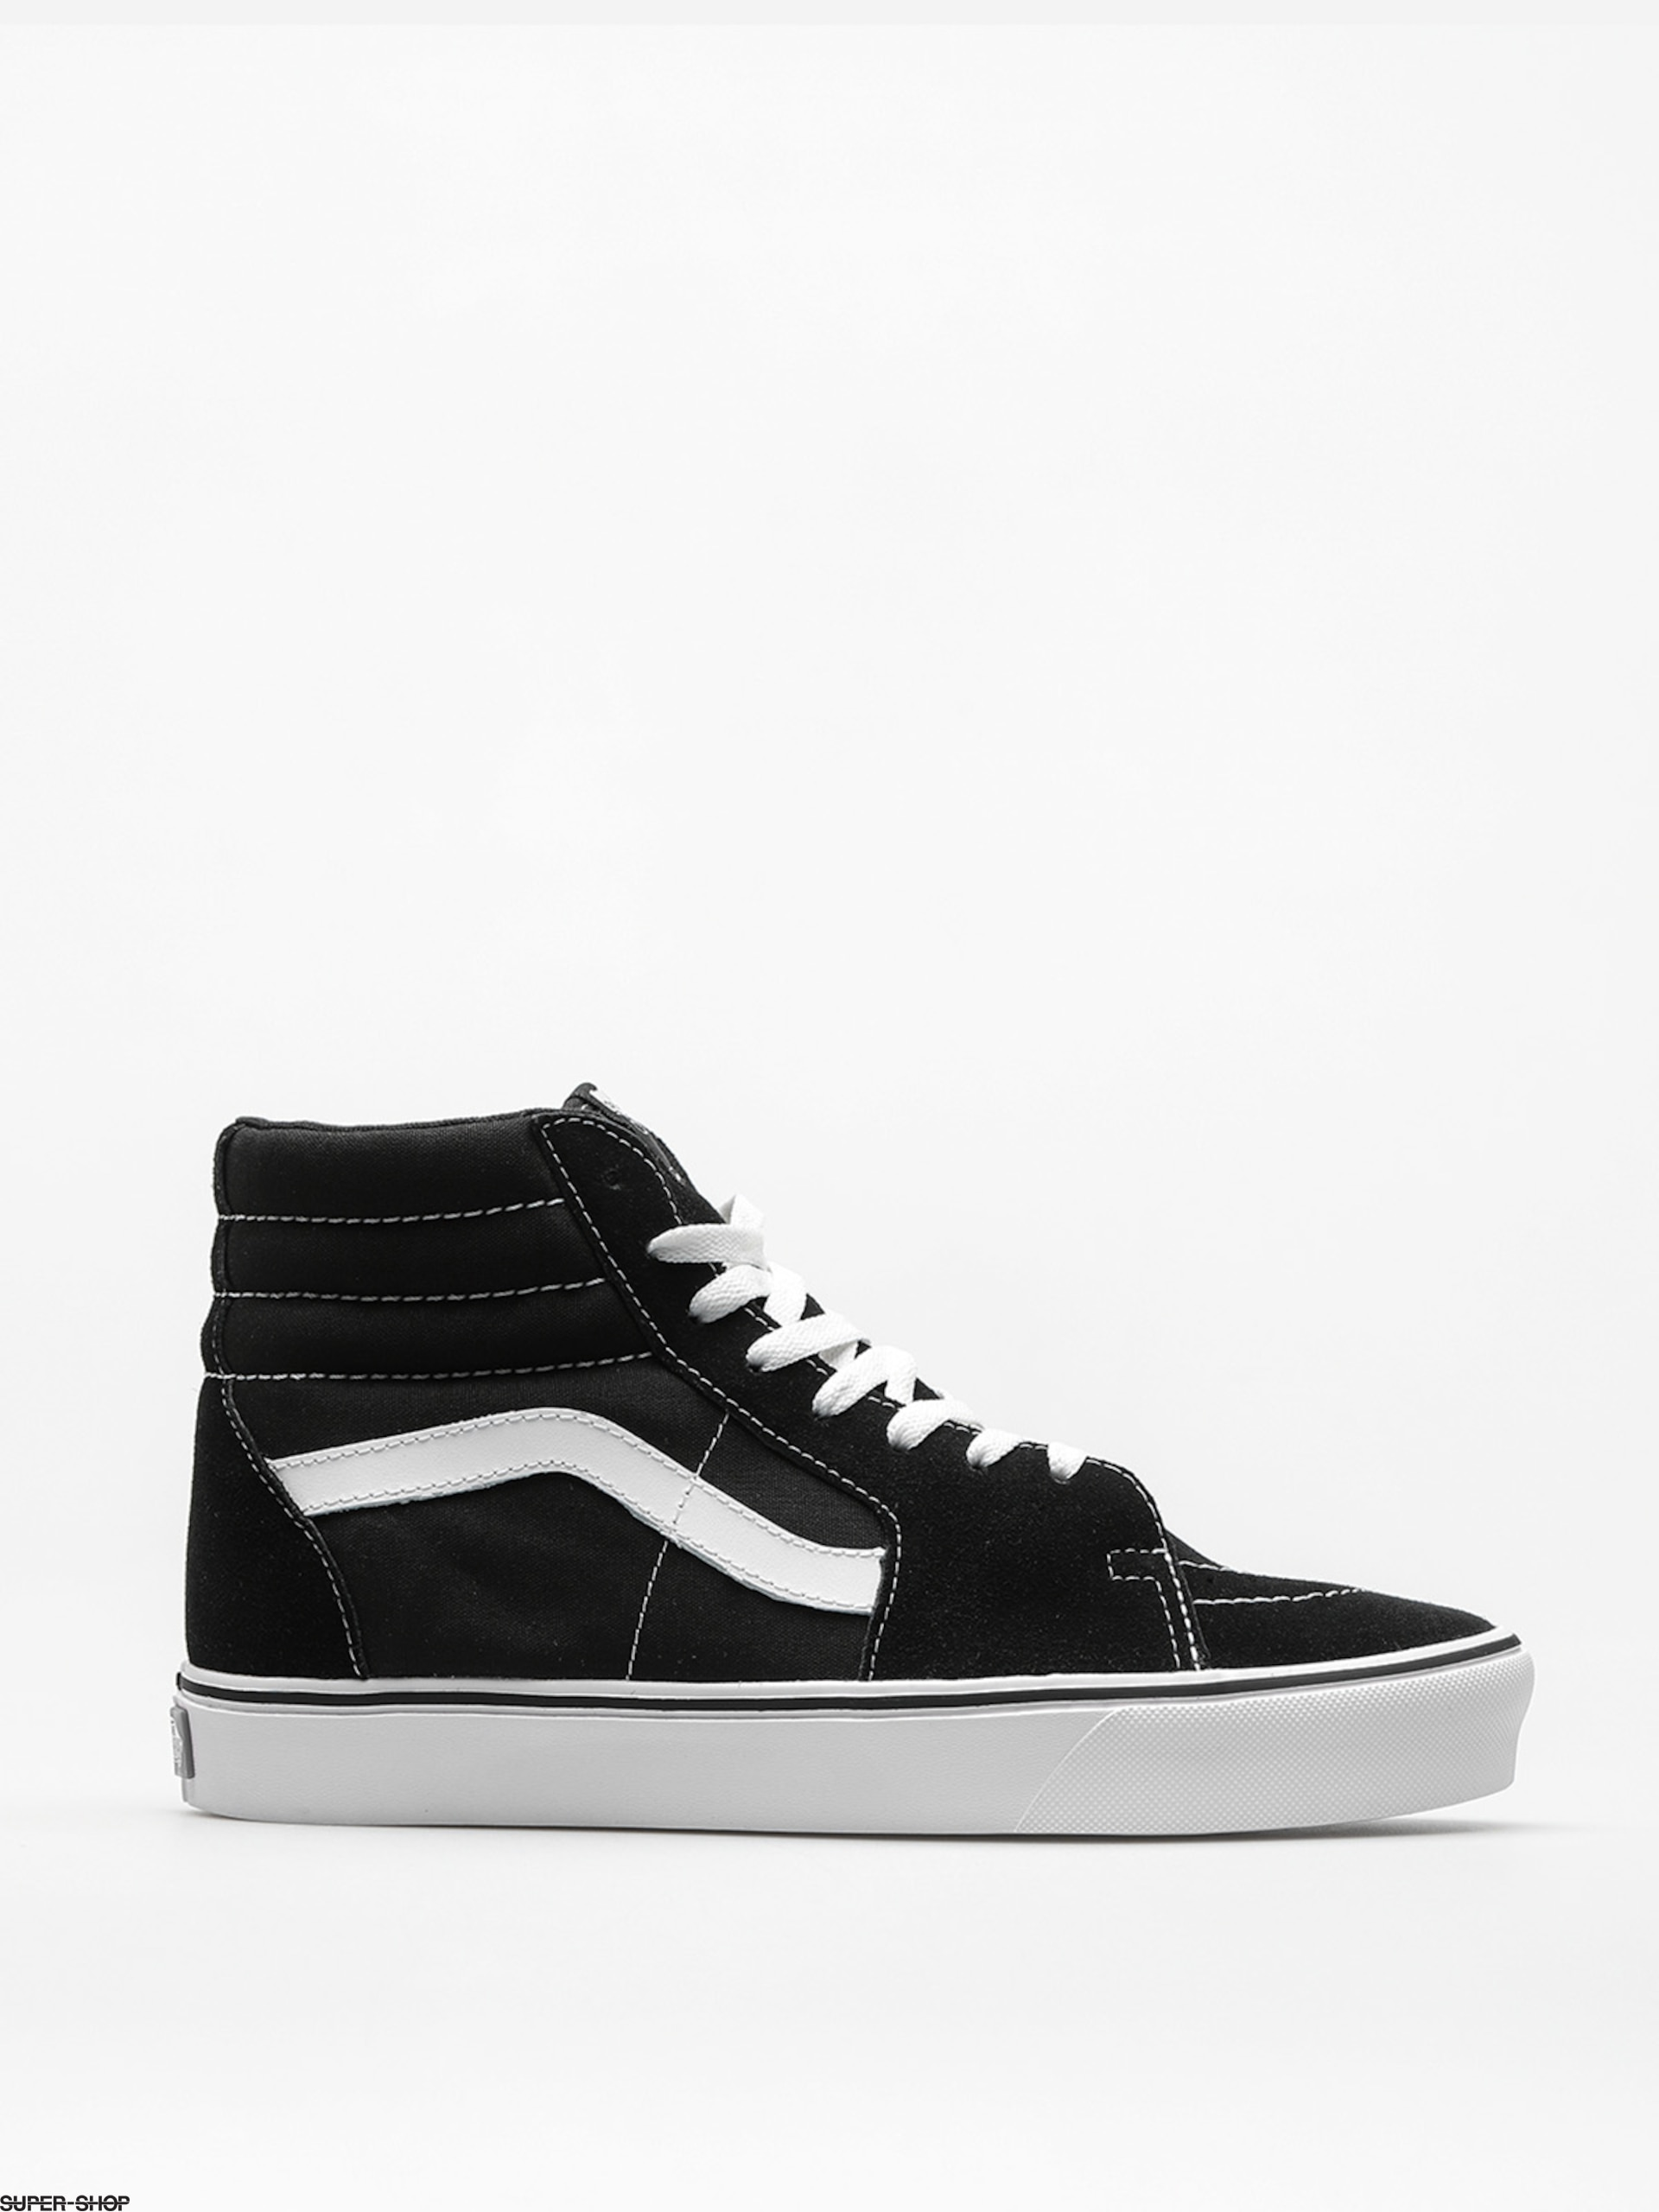 915800-w1920-vans-shoes-sk8-hi-lite-suede-canvas-black-white.jpg f50c6d433